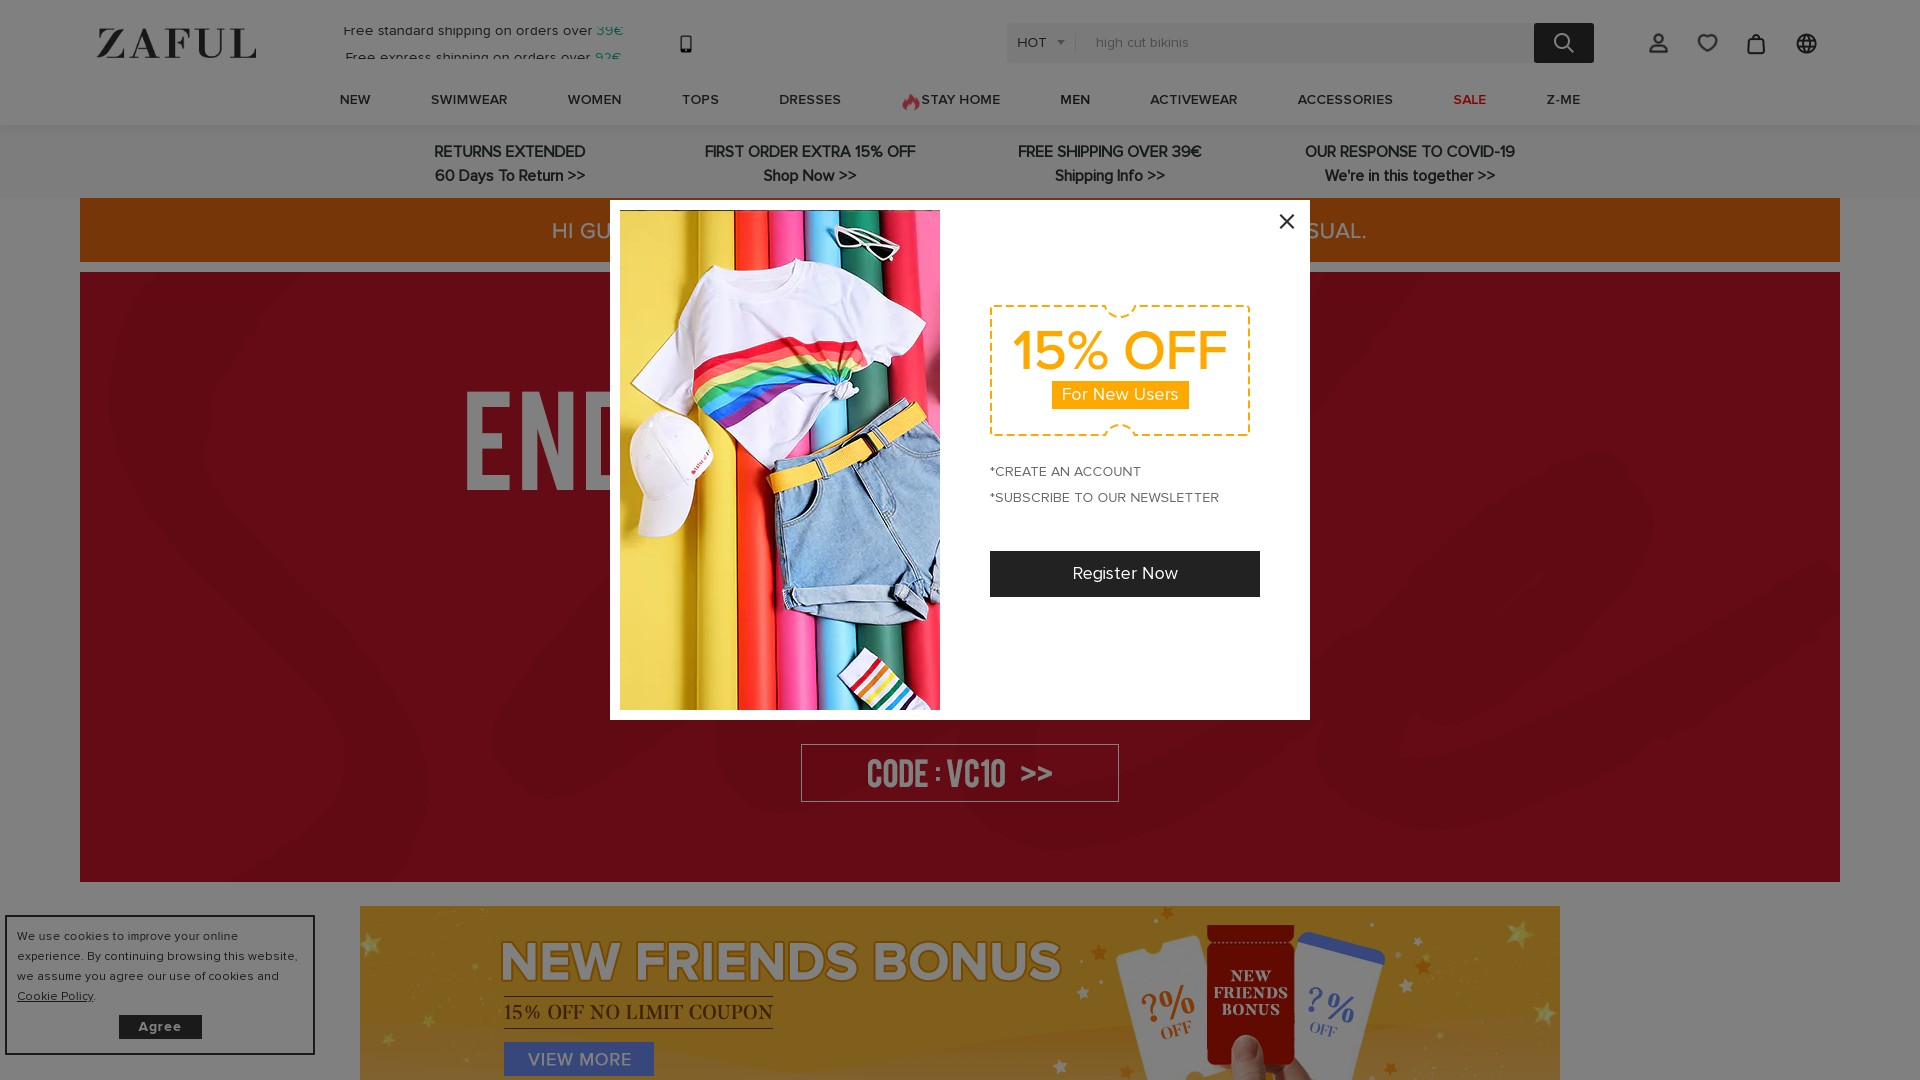 Is Zaful a Scam? Review of the Online Clothing Store